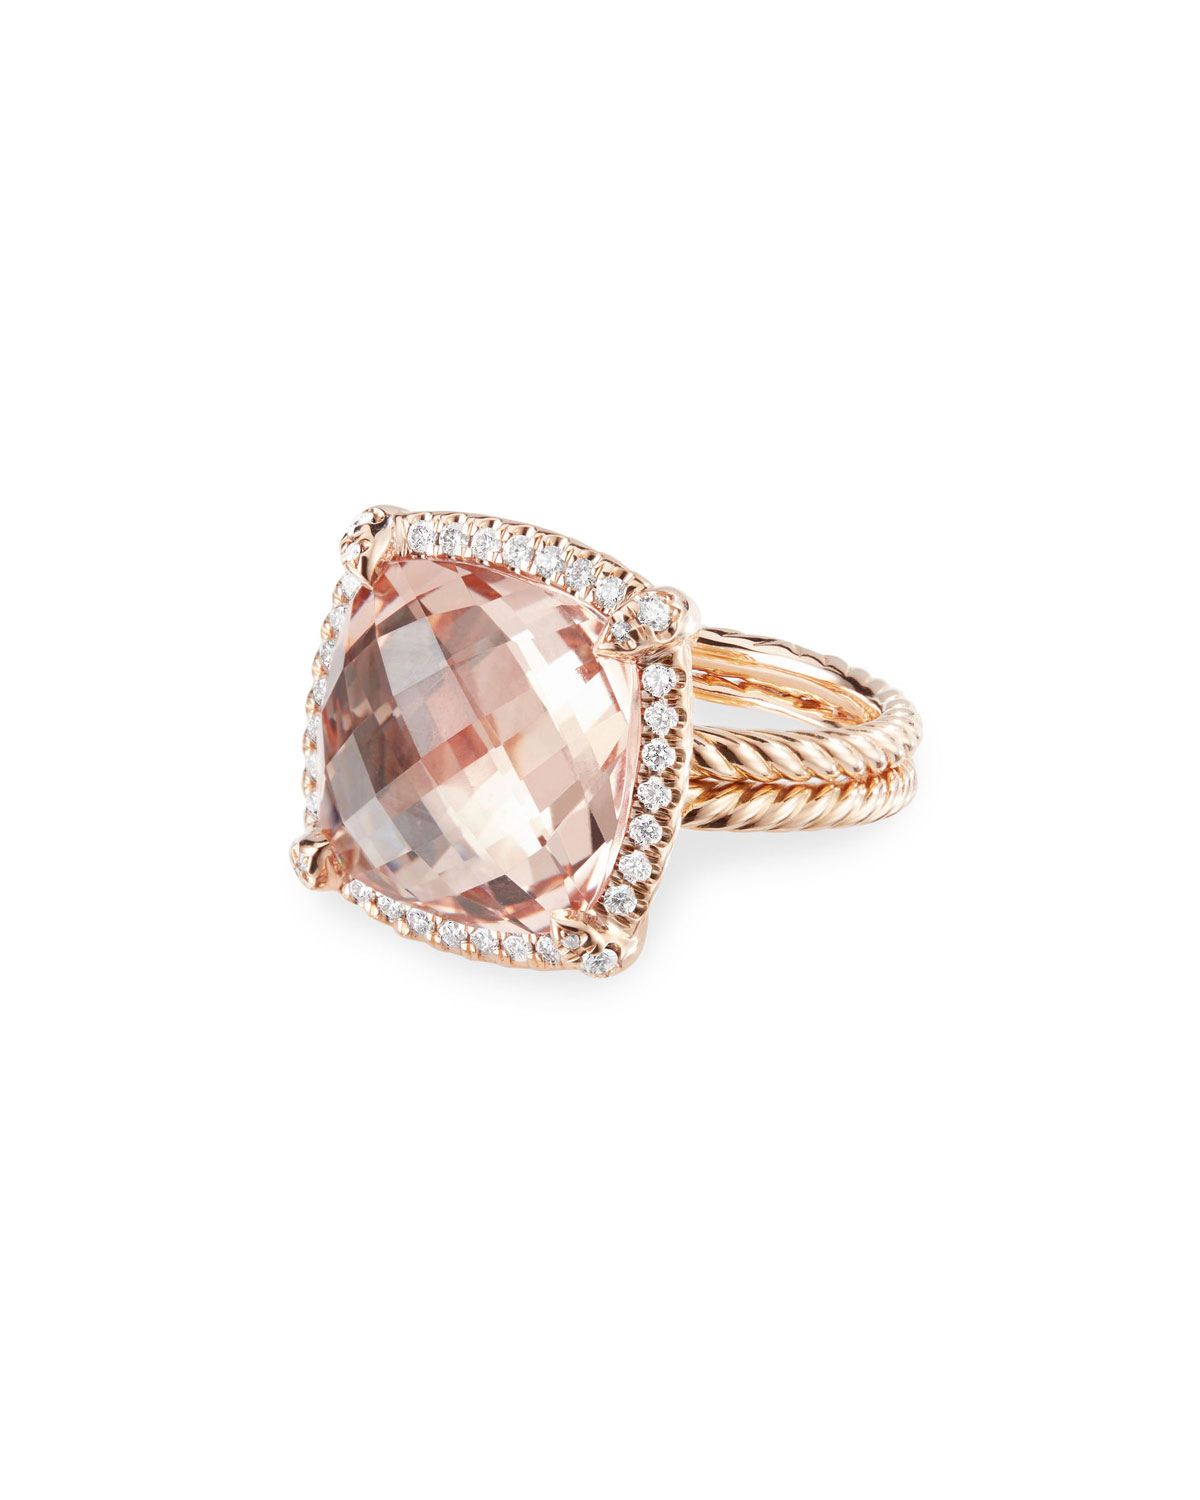 Rose Gold Ring with Morganite and Diamonds